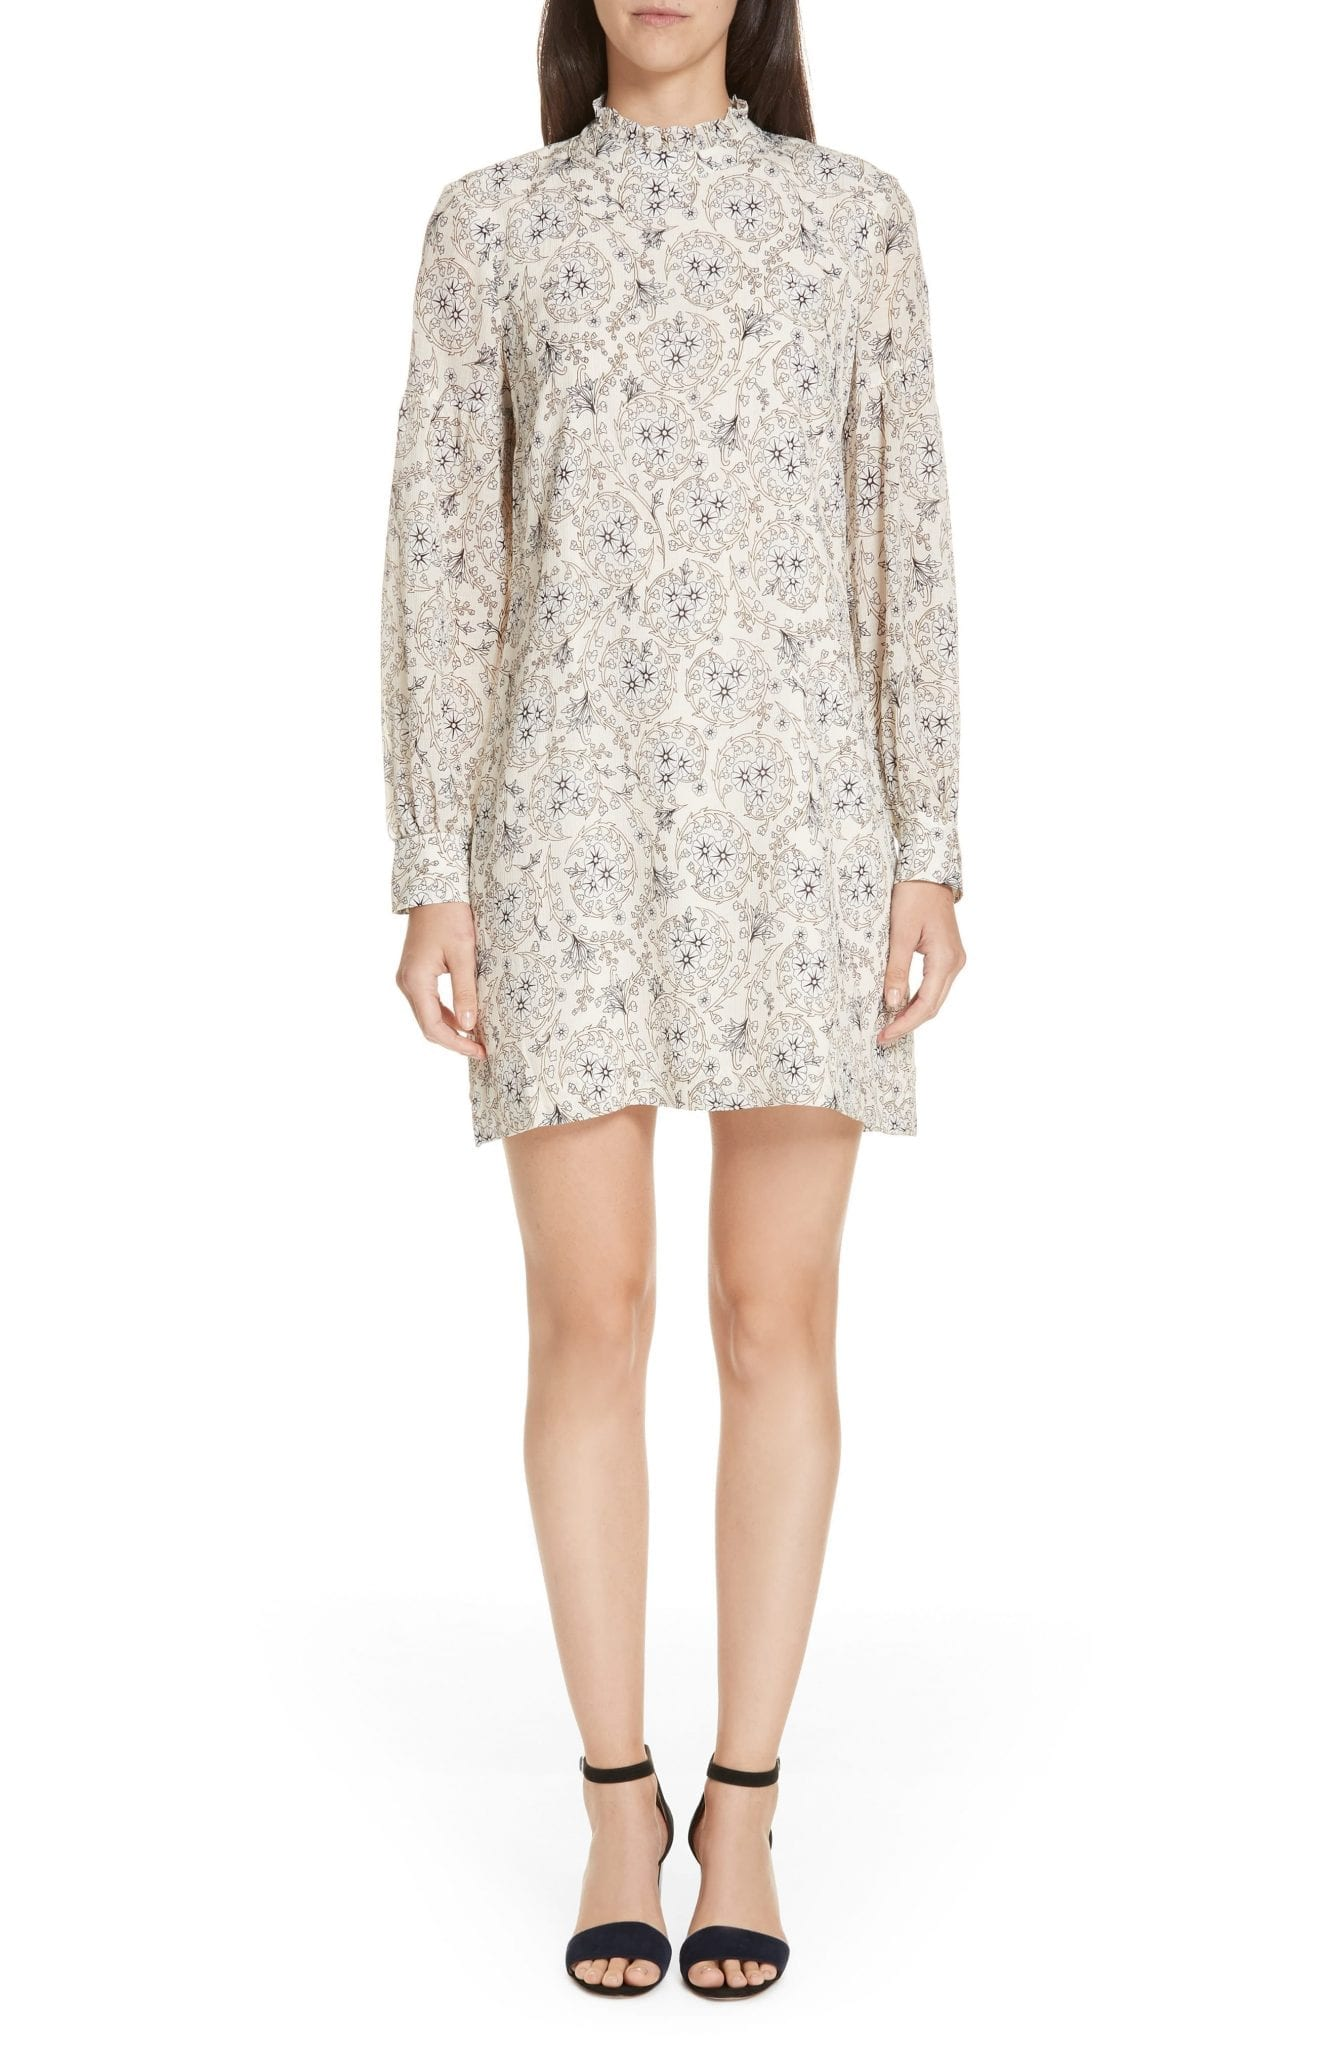 DEREK LAM 10 CROSBY Silk Cream / Floral Printed Dress